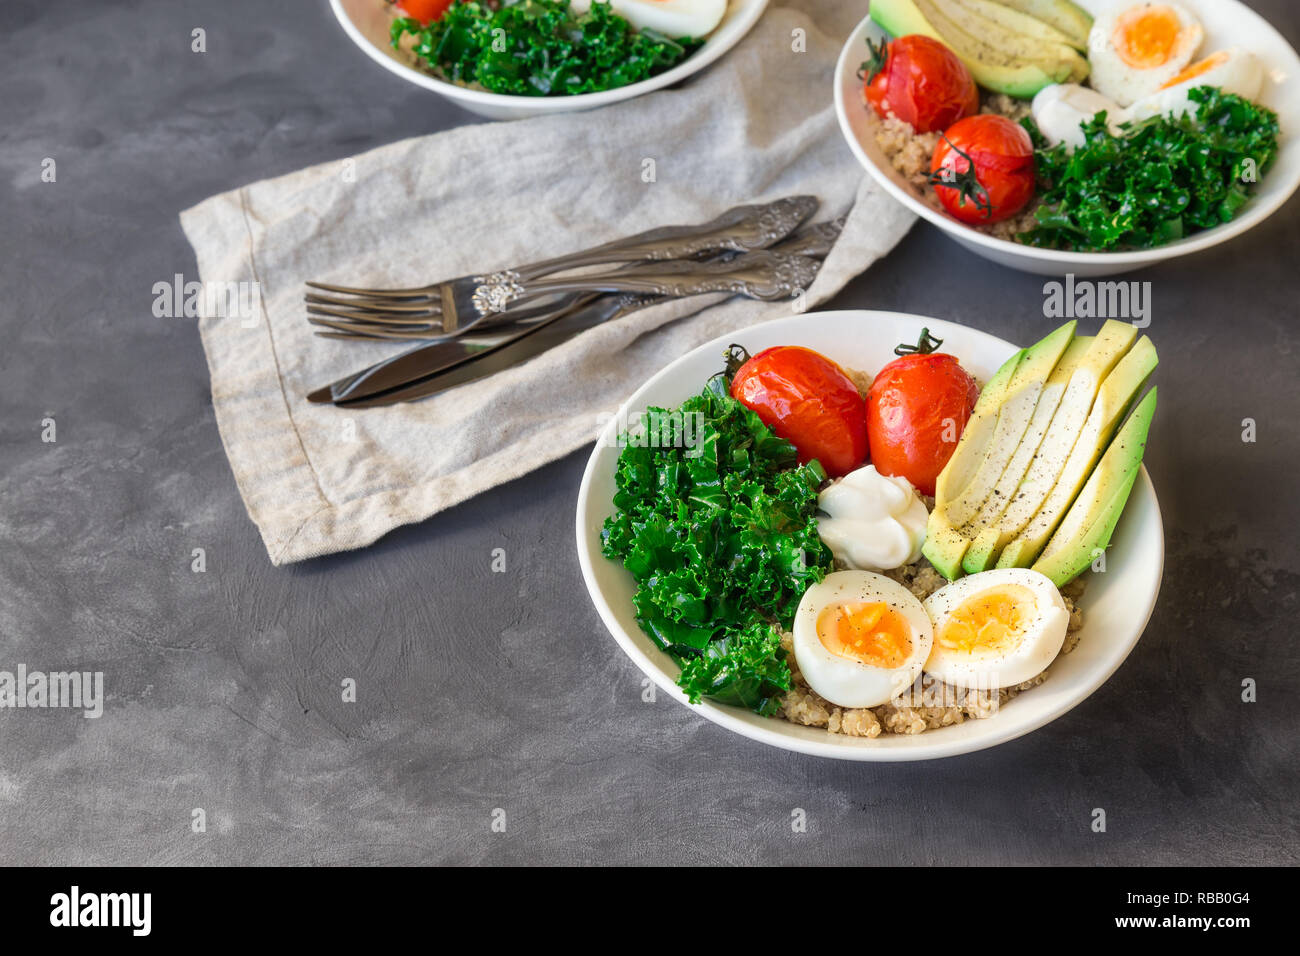 Quinoa buddha bowls with baked tomatoes, avocado, kale, boiled eggs and greek yogurt on gray concrete background. Healthy breakfast. - Stock Image